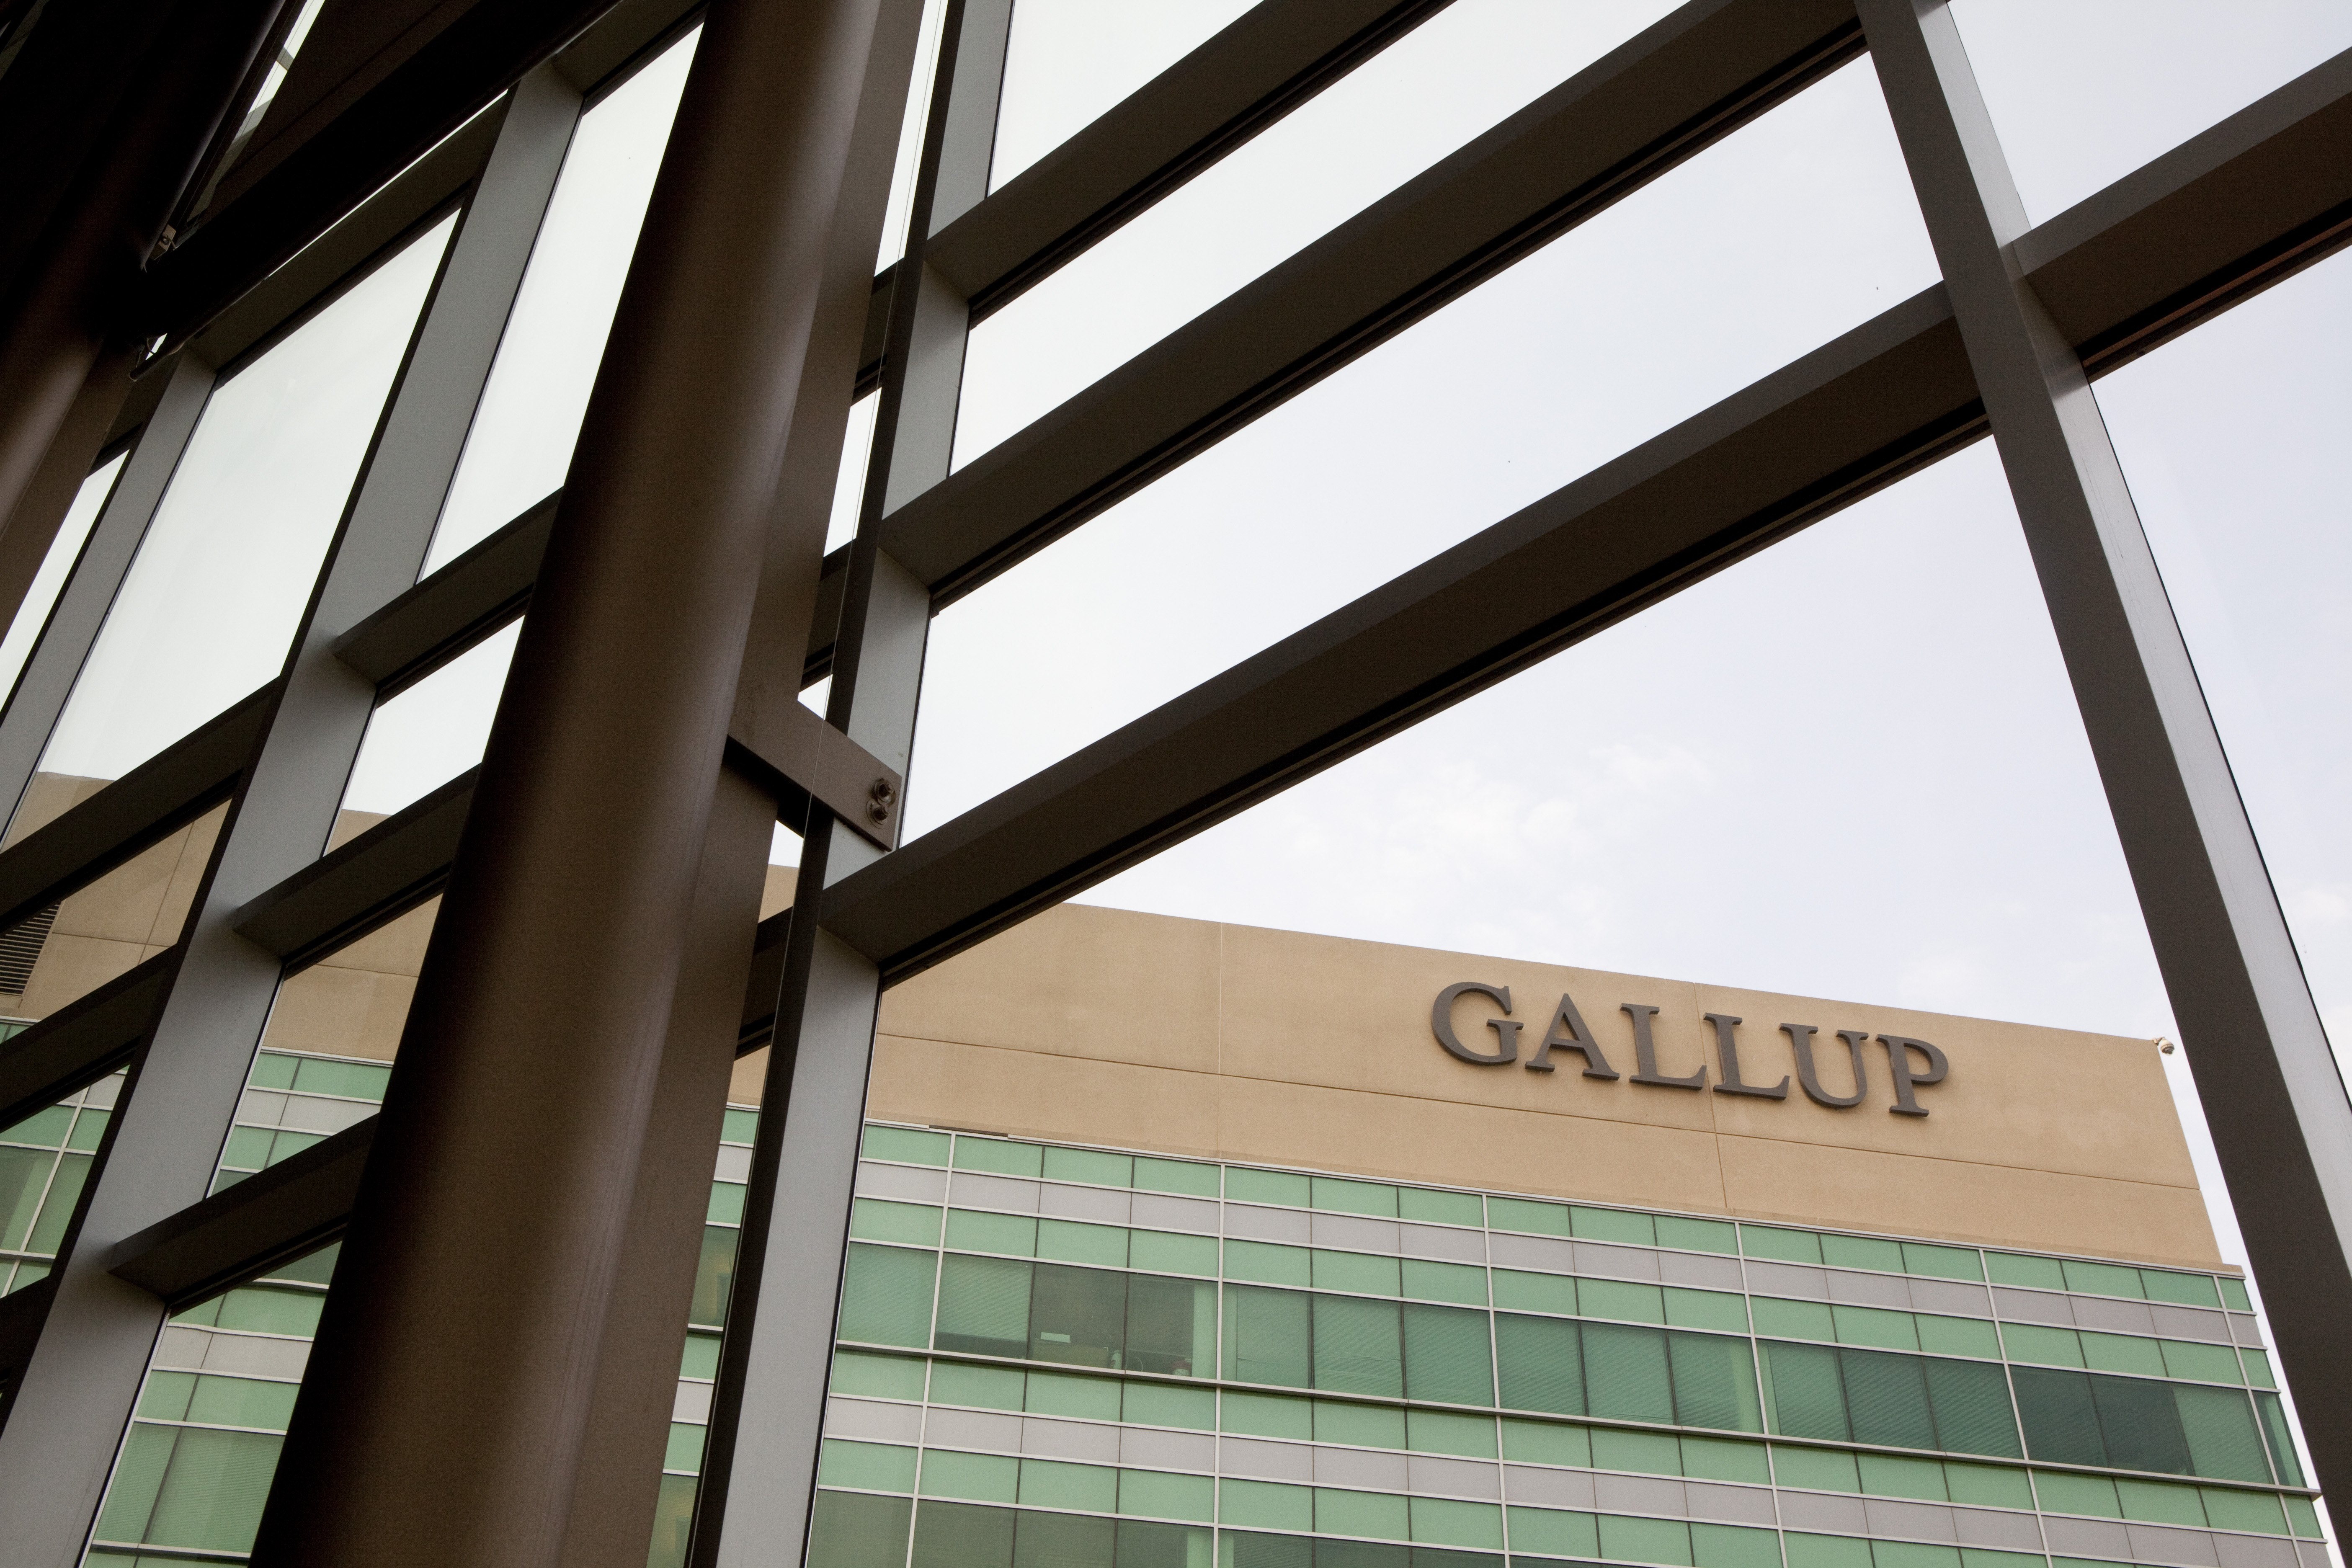 The operations headquarters of the Gallup organization on June 7, 2012 in Omaha, Nebraska.